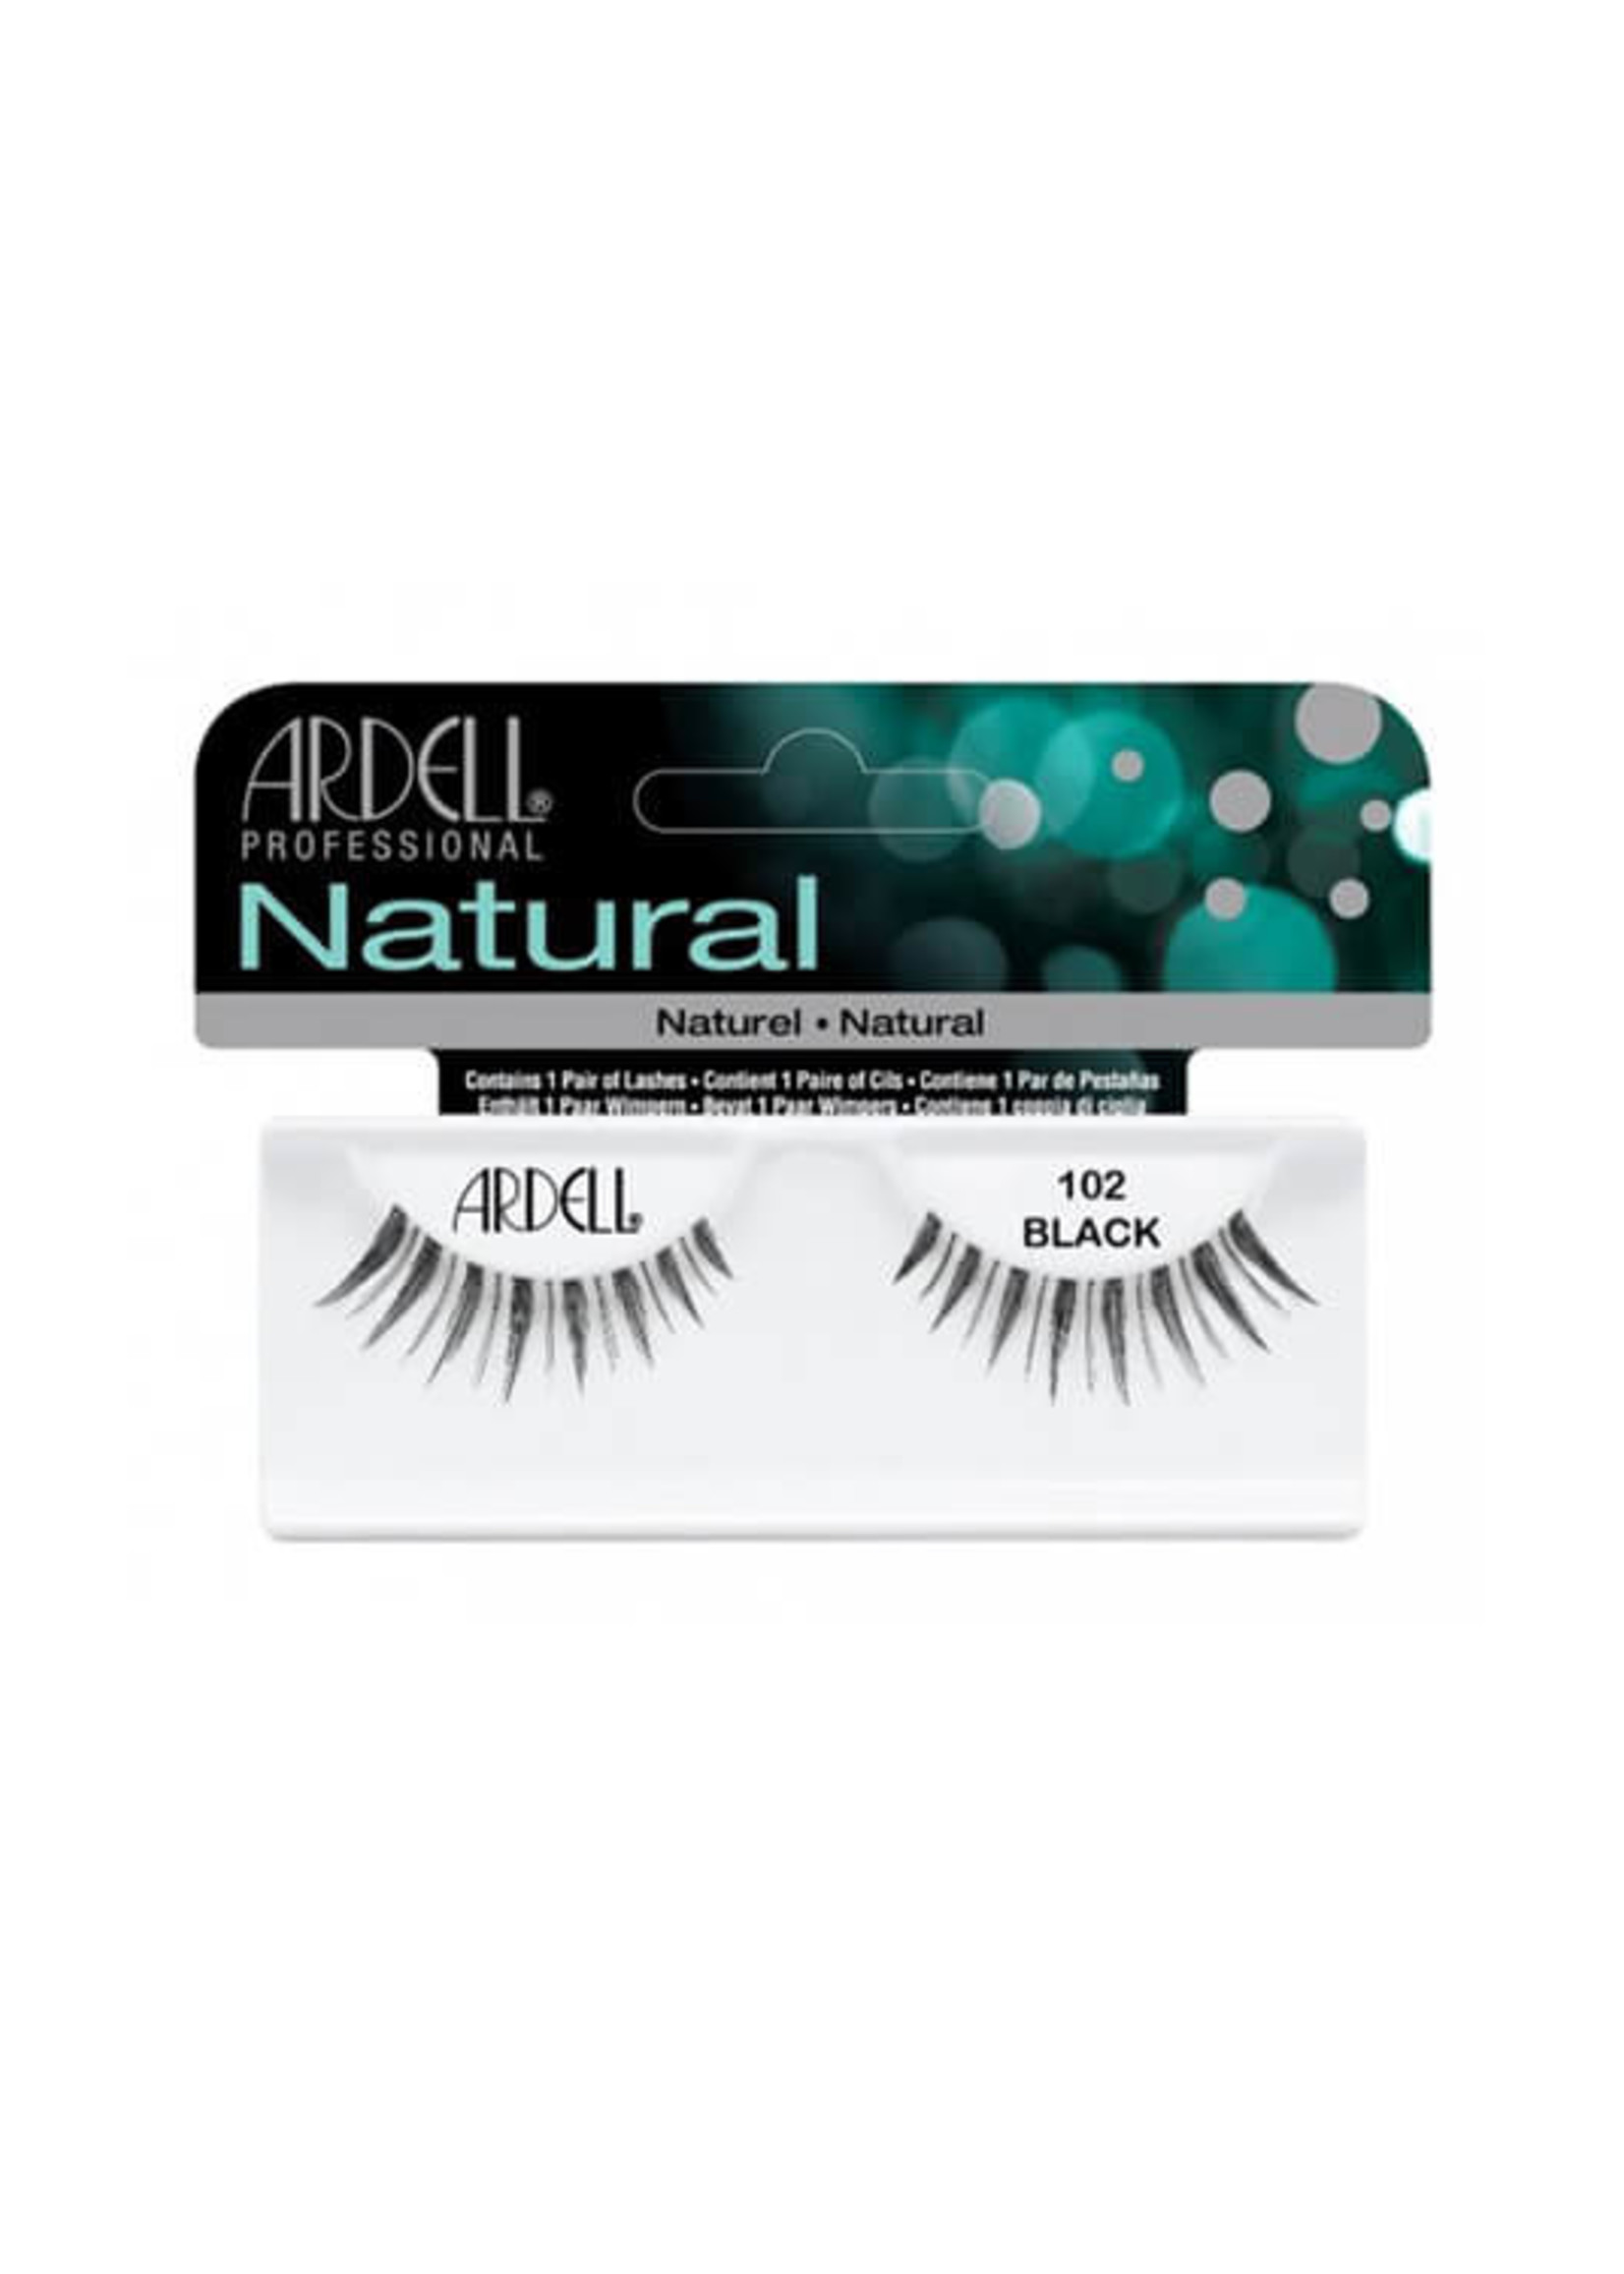 Ardell Ardell Glamour Lashes #102